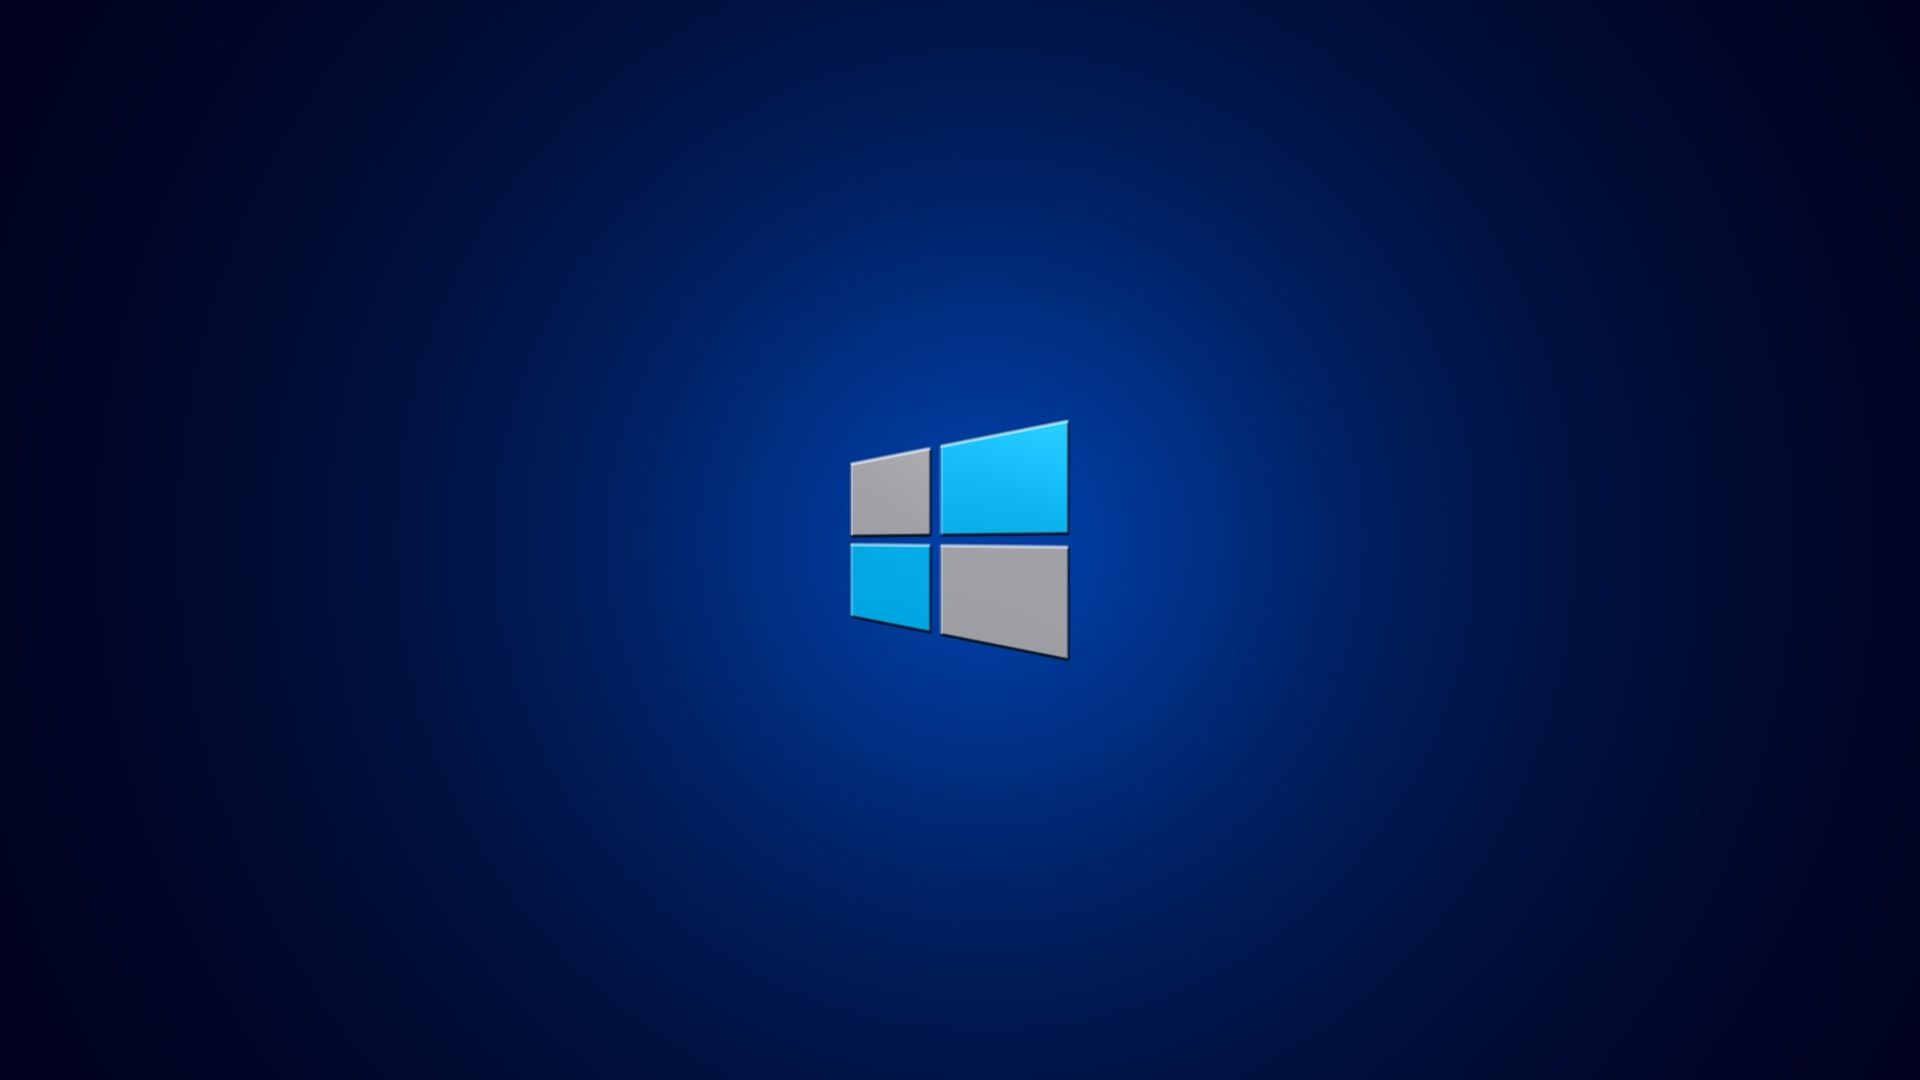 Windows 8 Minimal Official Logo 1080p Hd Wallpaper 1080p Hd Windows Wallpaper Wallpaper Windows 10 Windows Desktop Wallpaper